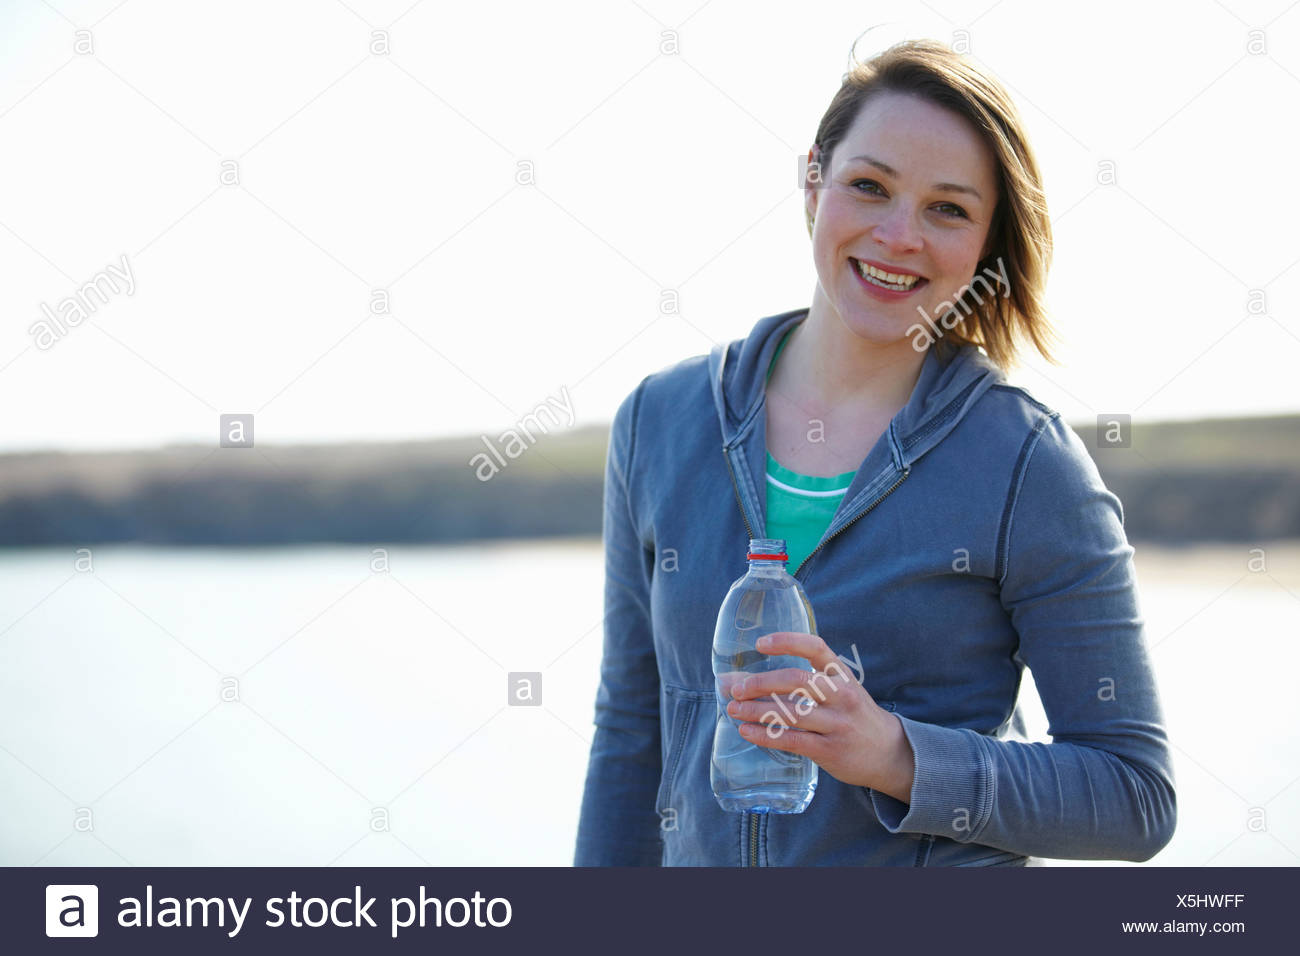 Portrait of young woman at coast taking exercise break - Stock Image